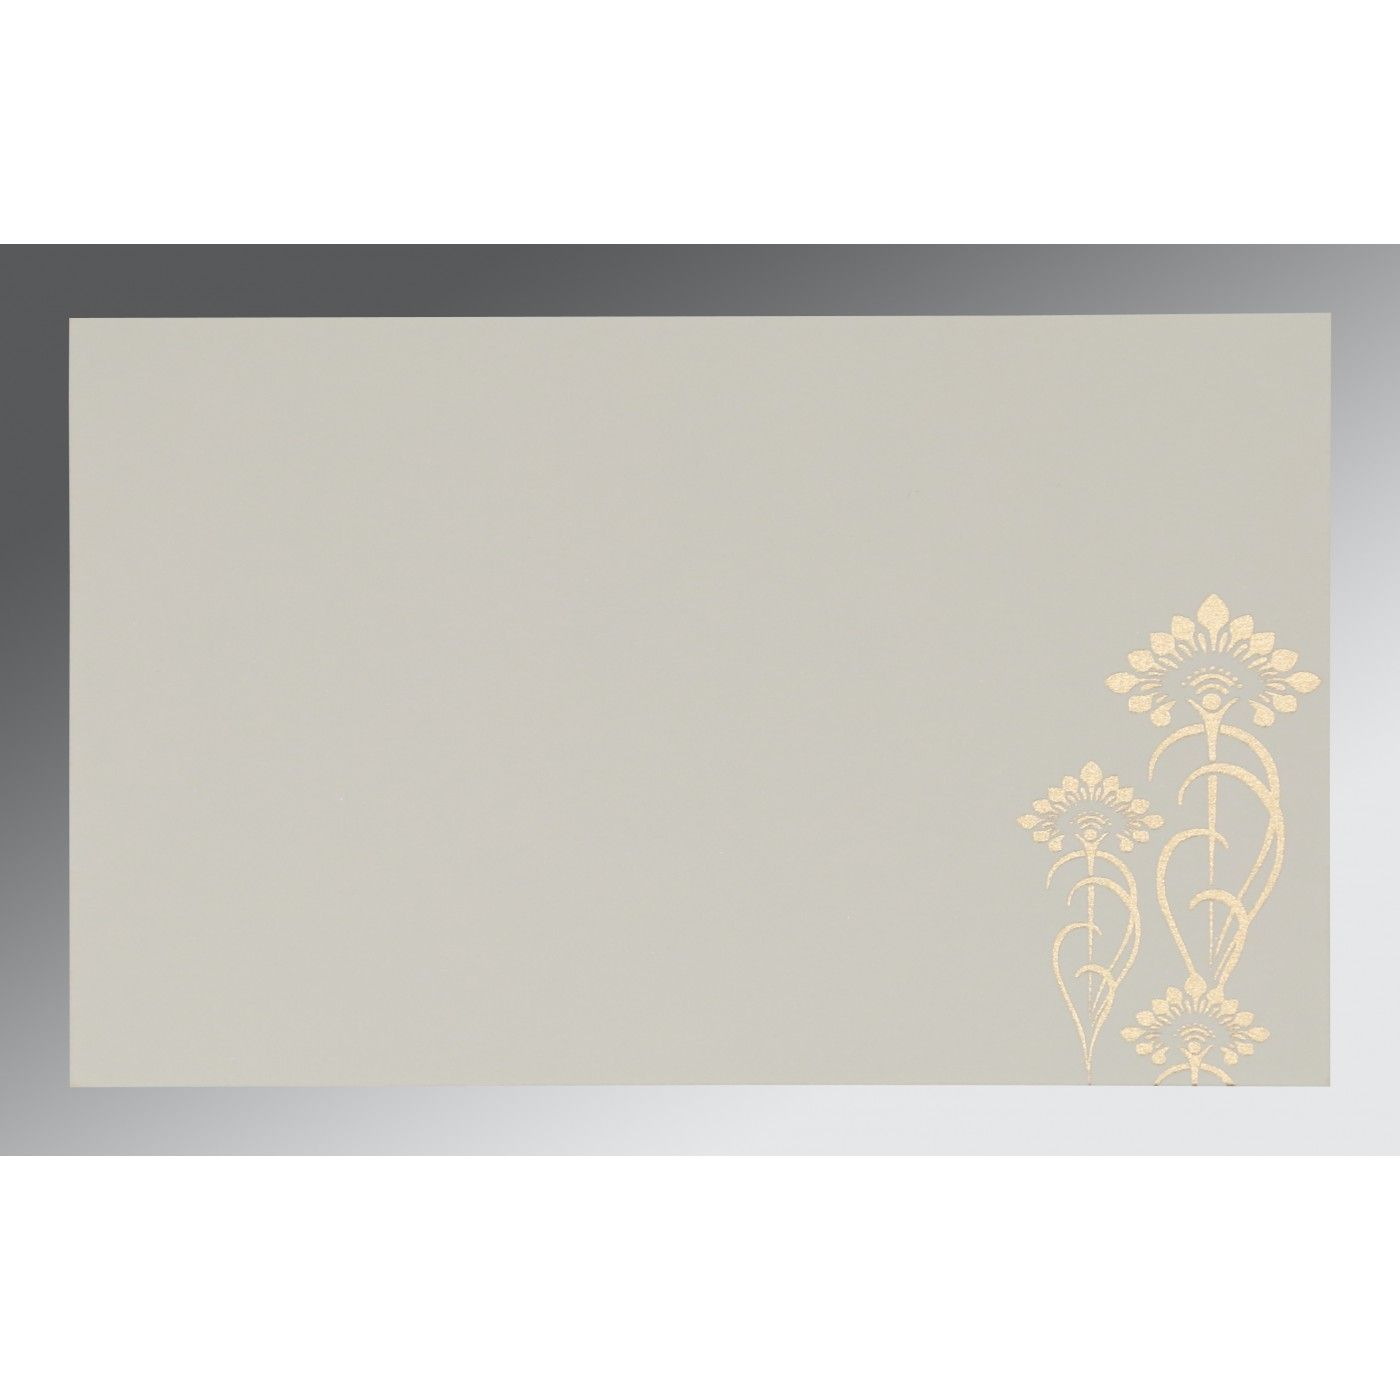 COPPER SHIMMERY SCREEN PRINTED WEDDING CARD : CD-8239H - IndianWeddingCards